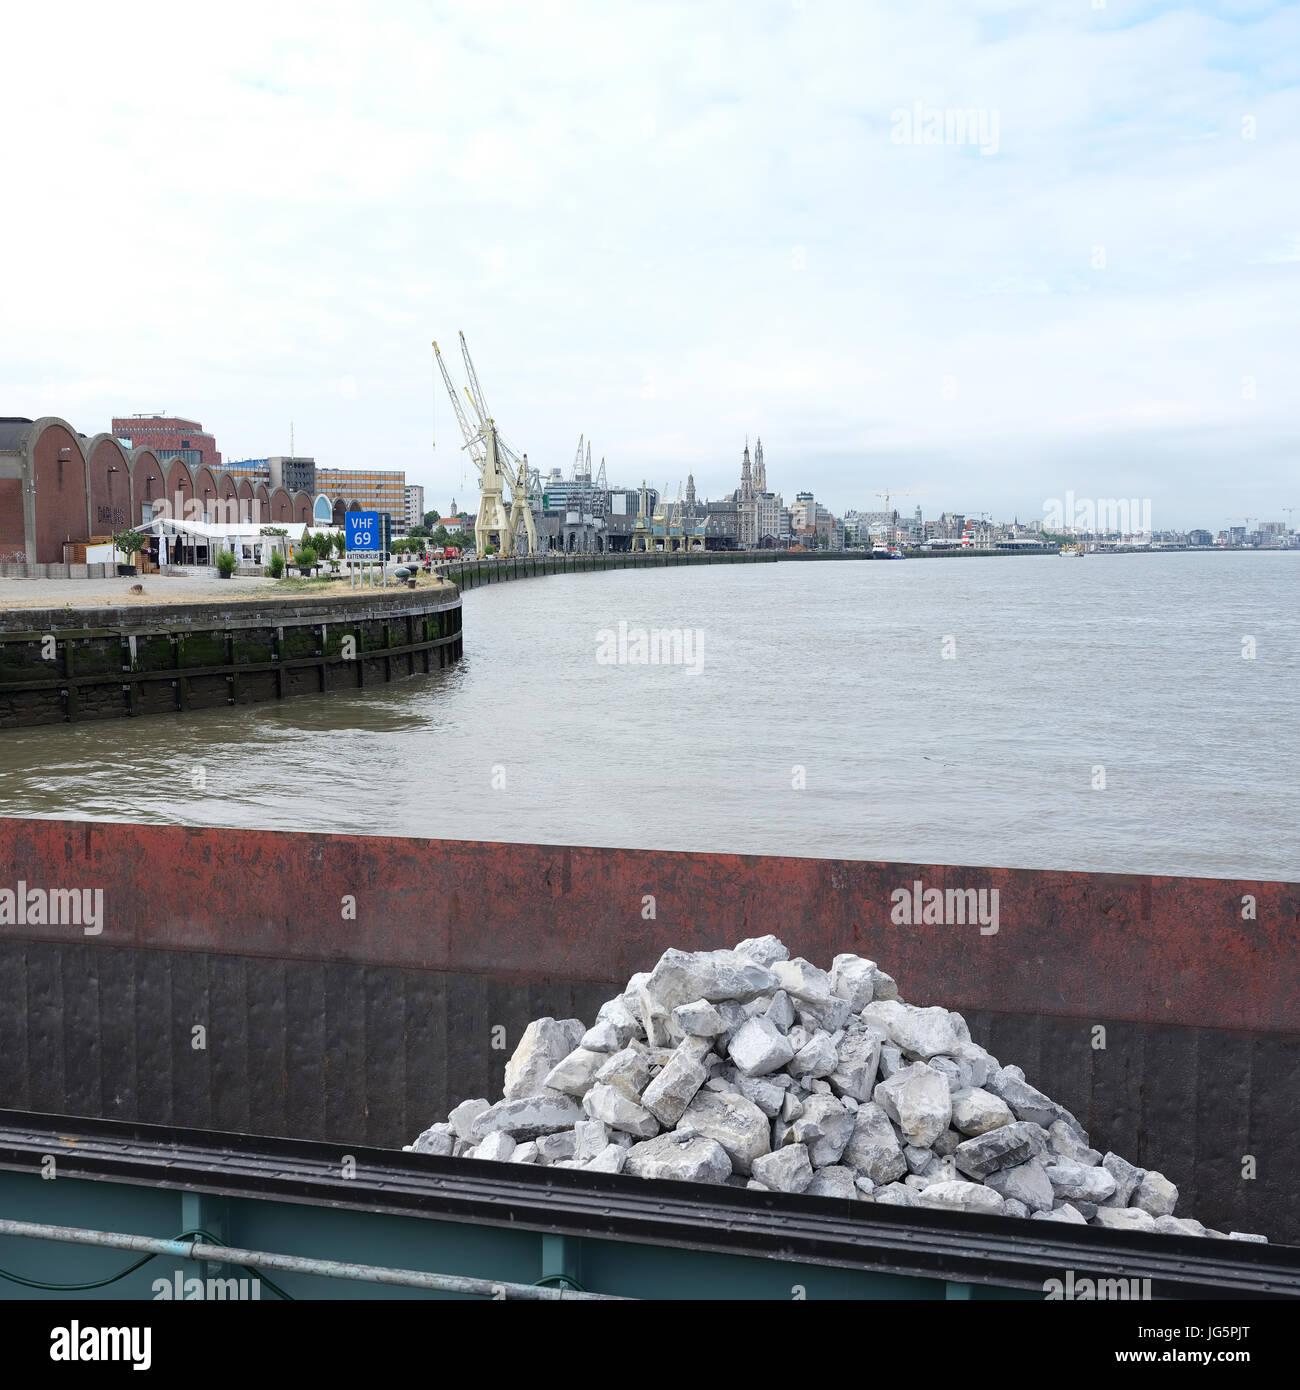 ship loaded with natural stone enters harbor on river Schelde in antwerp - Stock Image